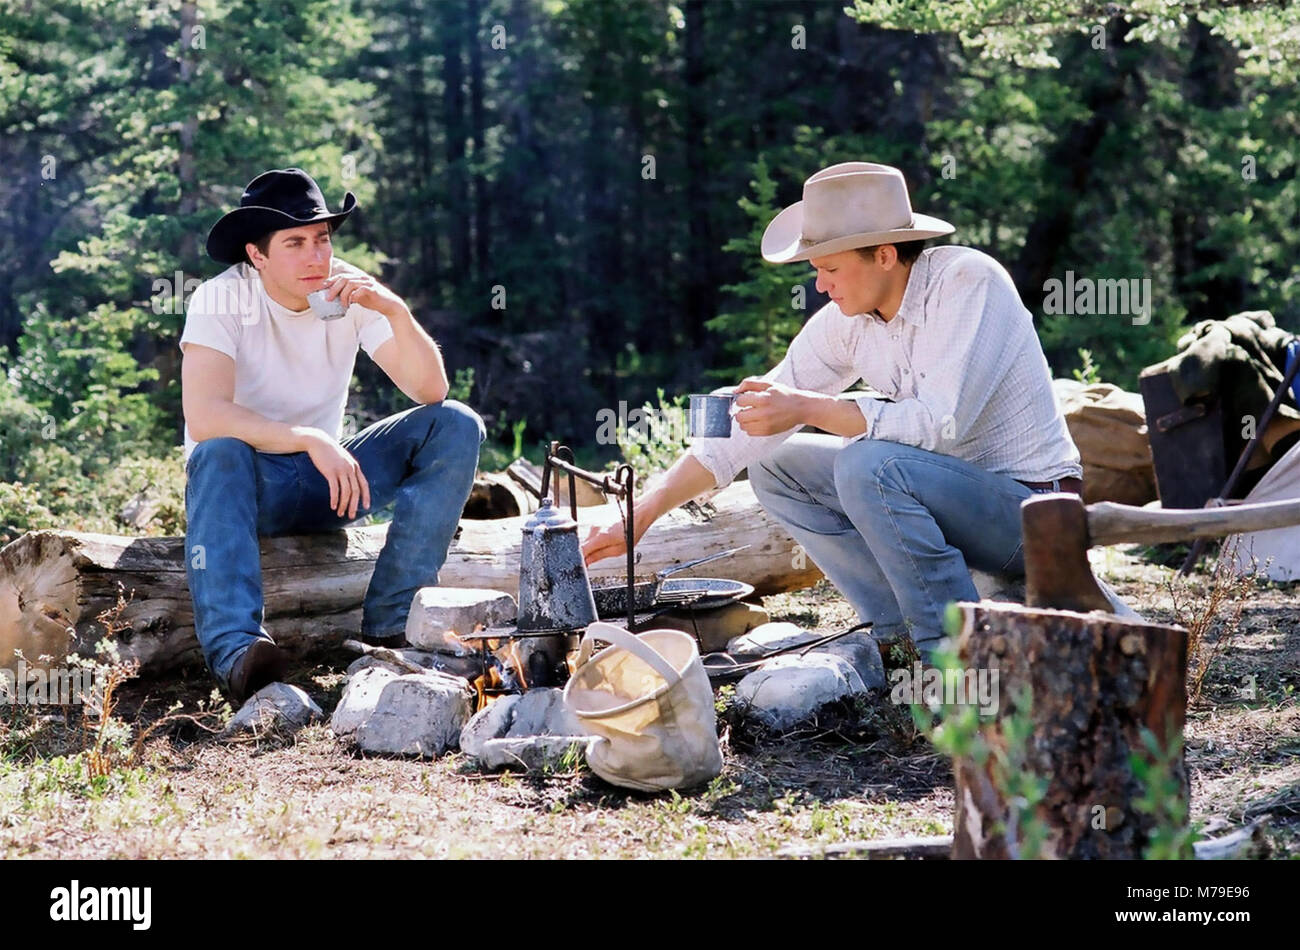 Brokeback Mountain 2005 Focus Features Film With Jake Gyllenhaal At Stock Photo Alamy